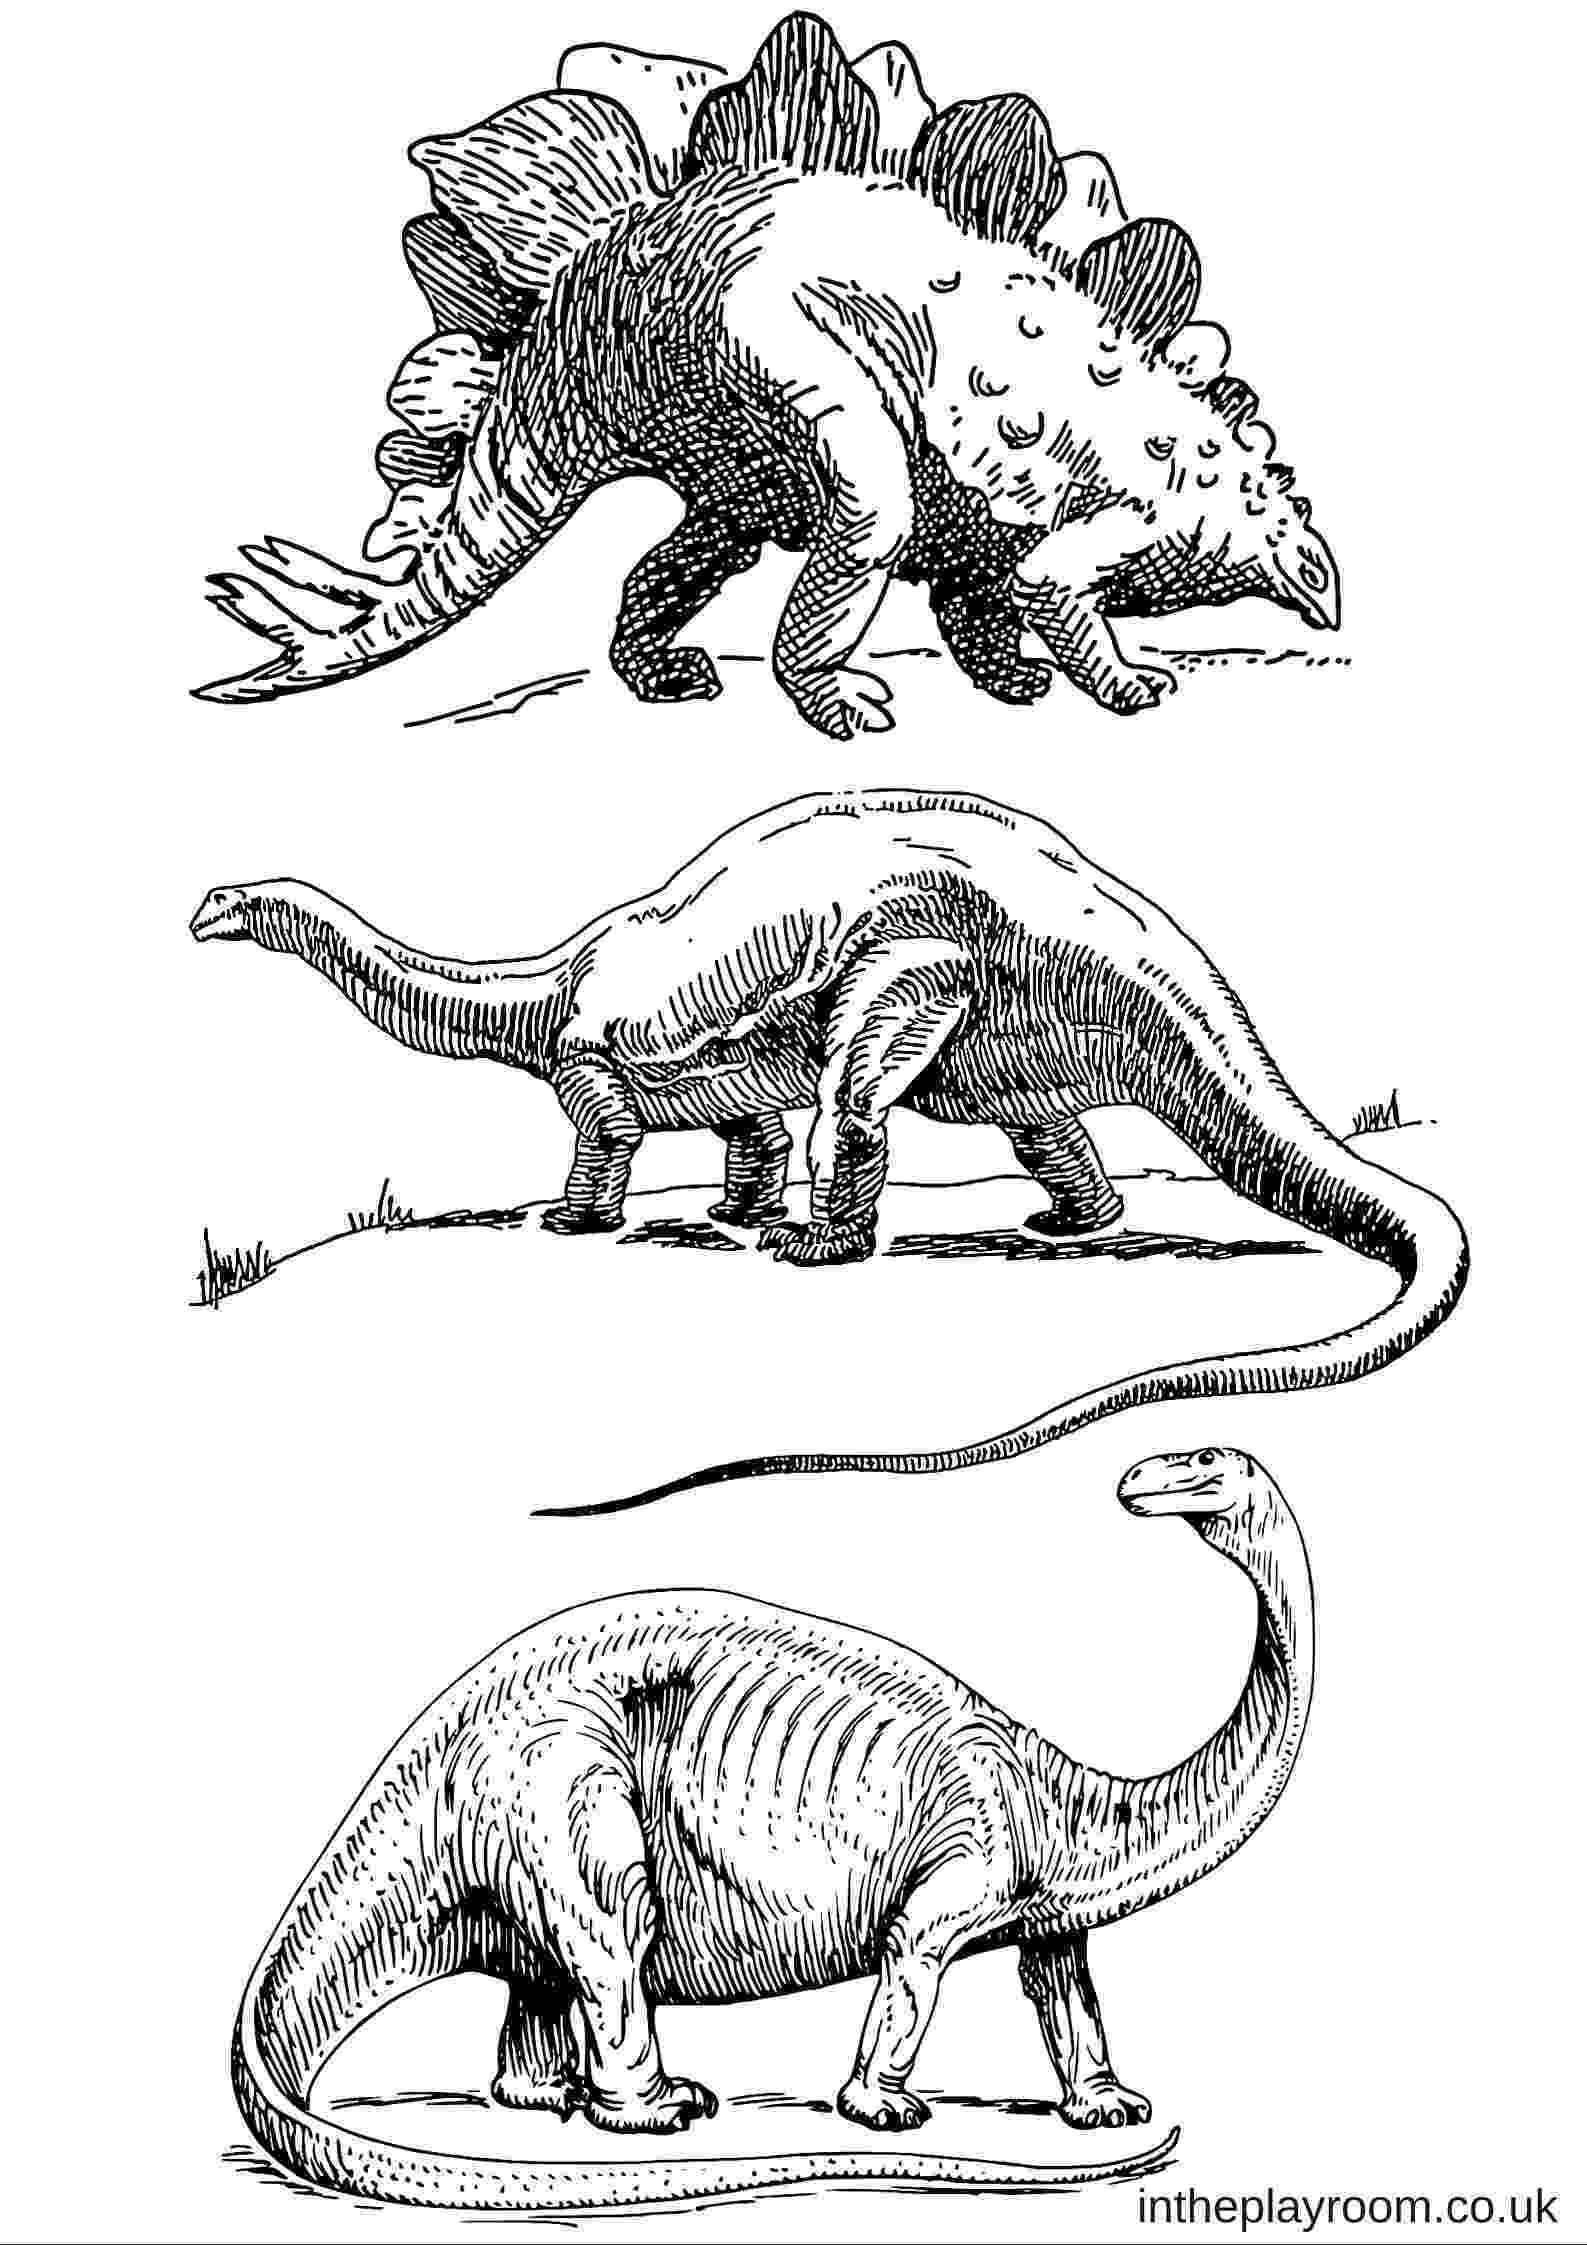 dino colouring pages online dinosaur colouring pages in the playroom colouring online pages dino